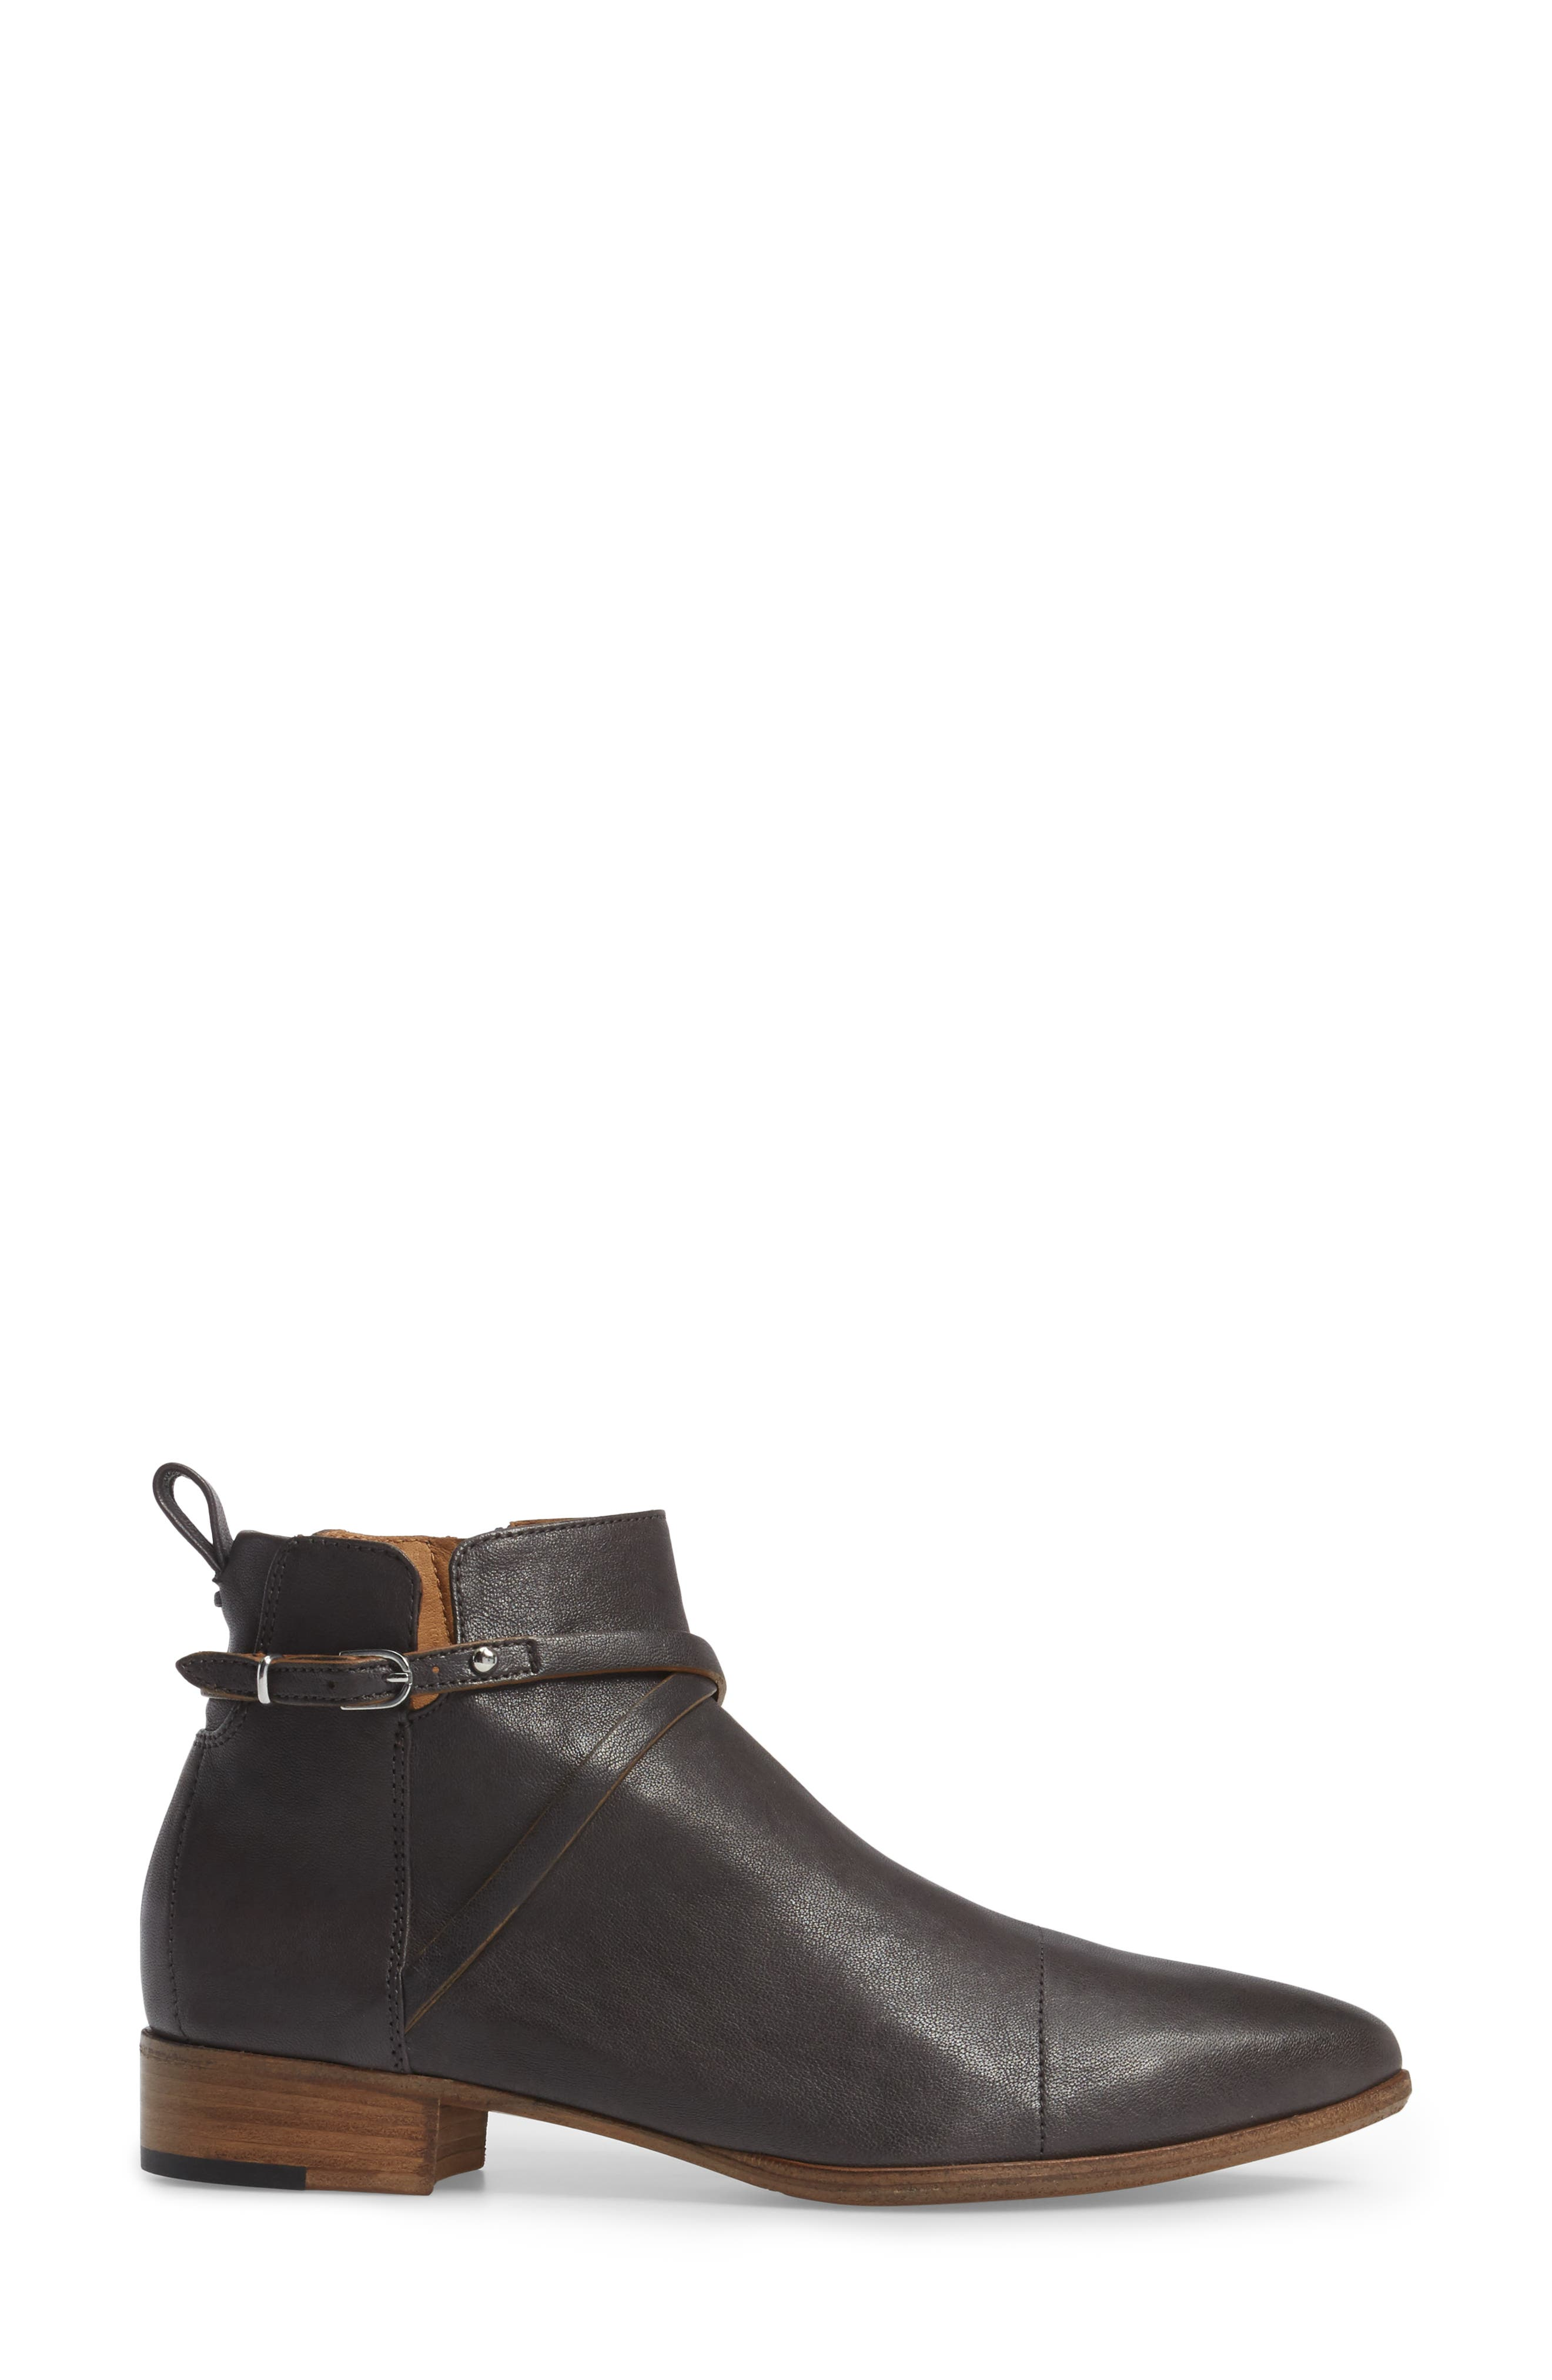 'Mea' Ankle Boot,                             Alternate thumbnail 3, color,                             032